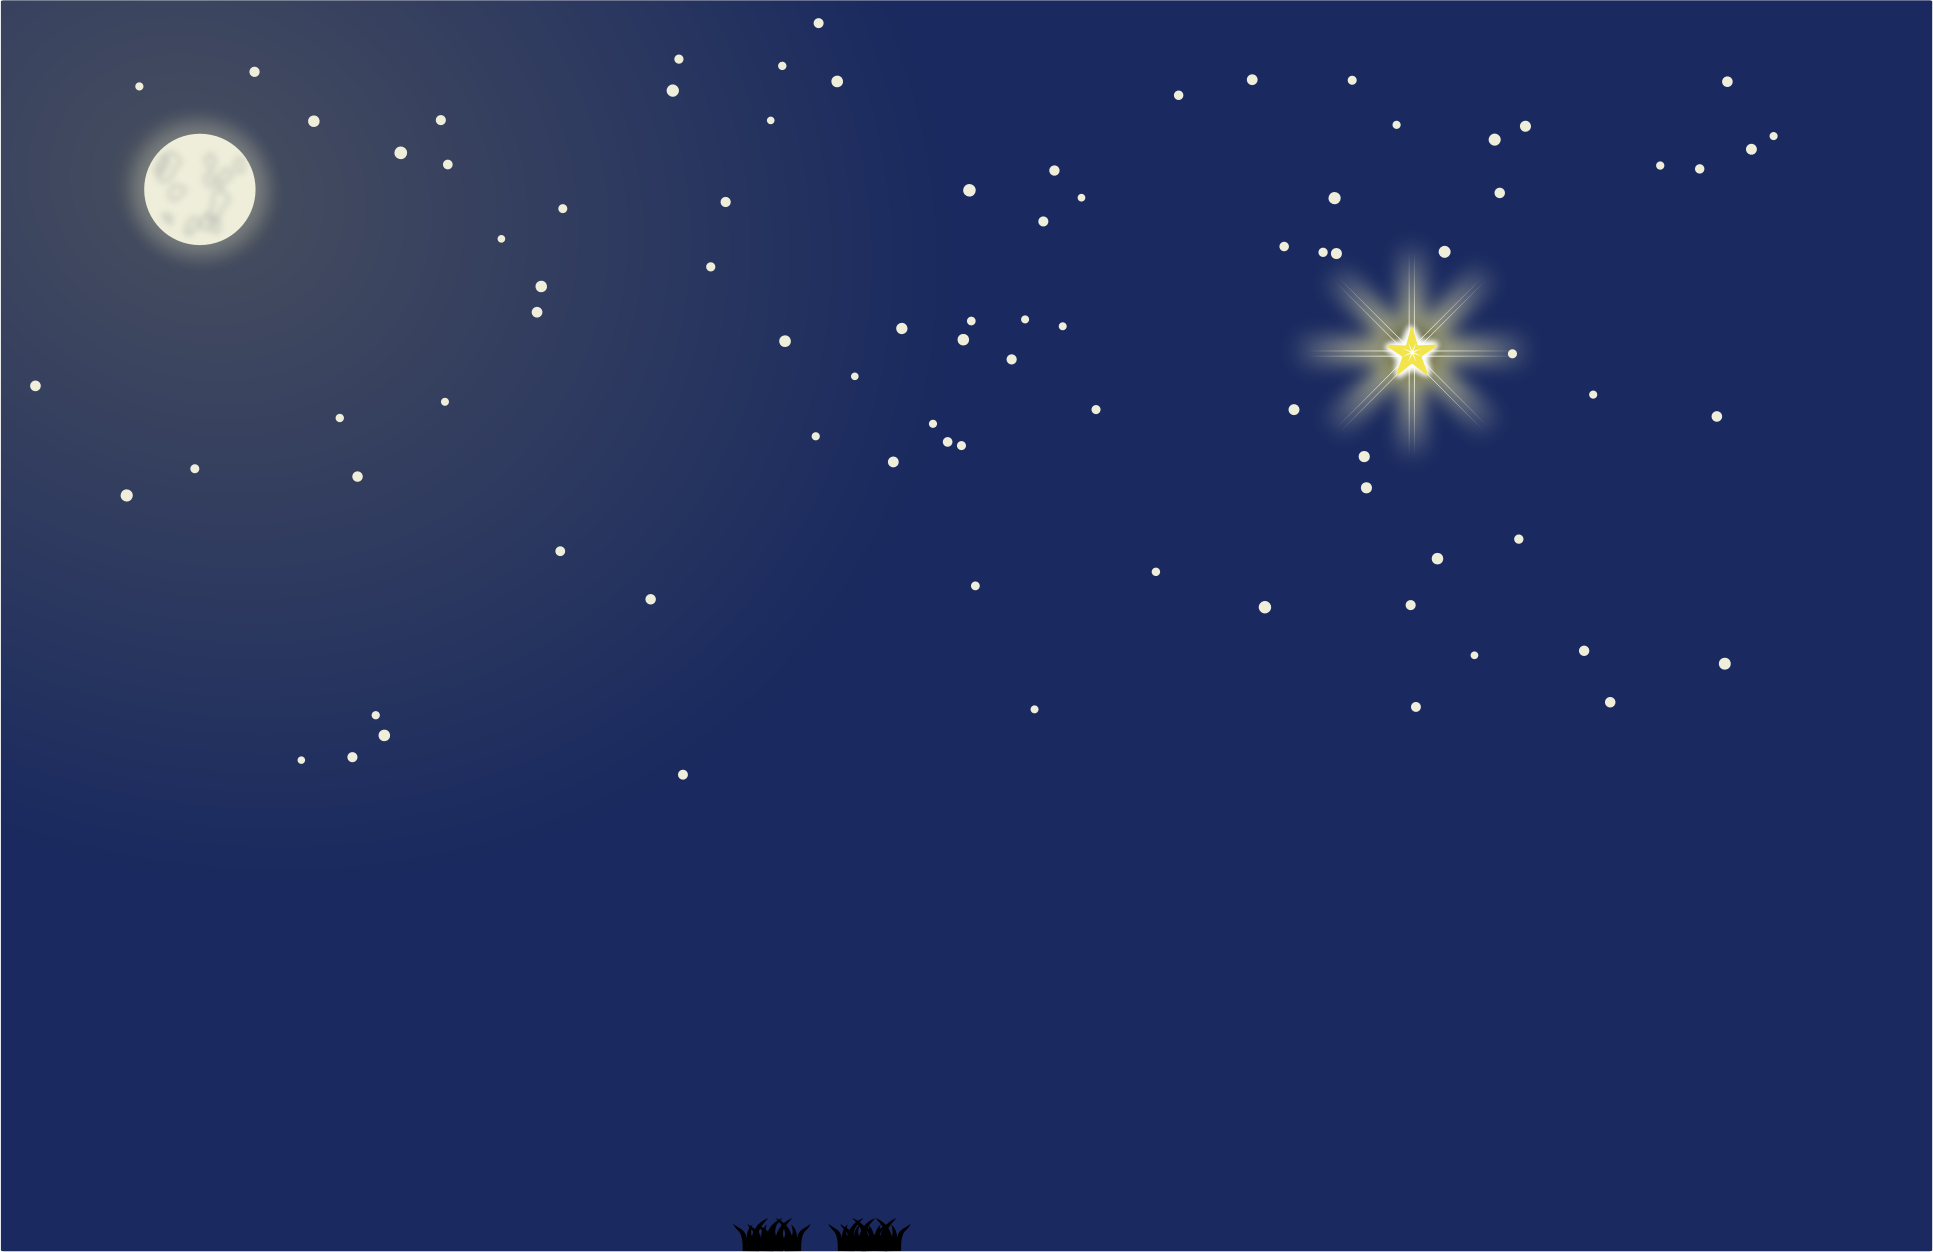 Bethlehem clipart background. Nativity scene